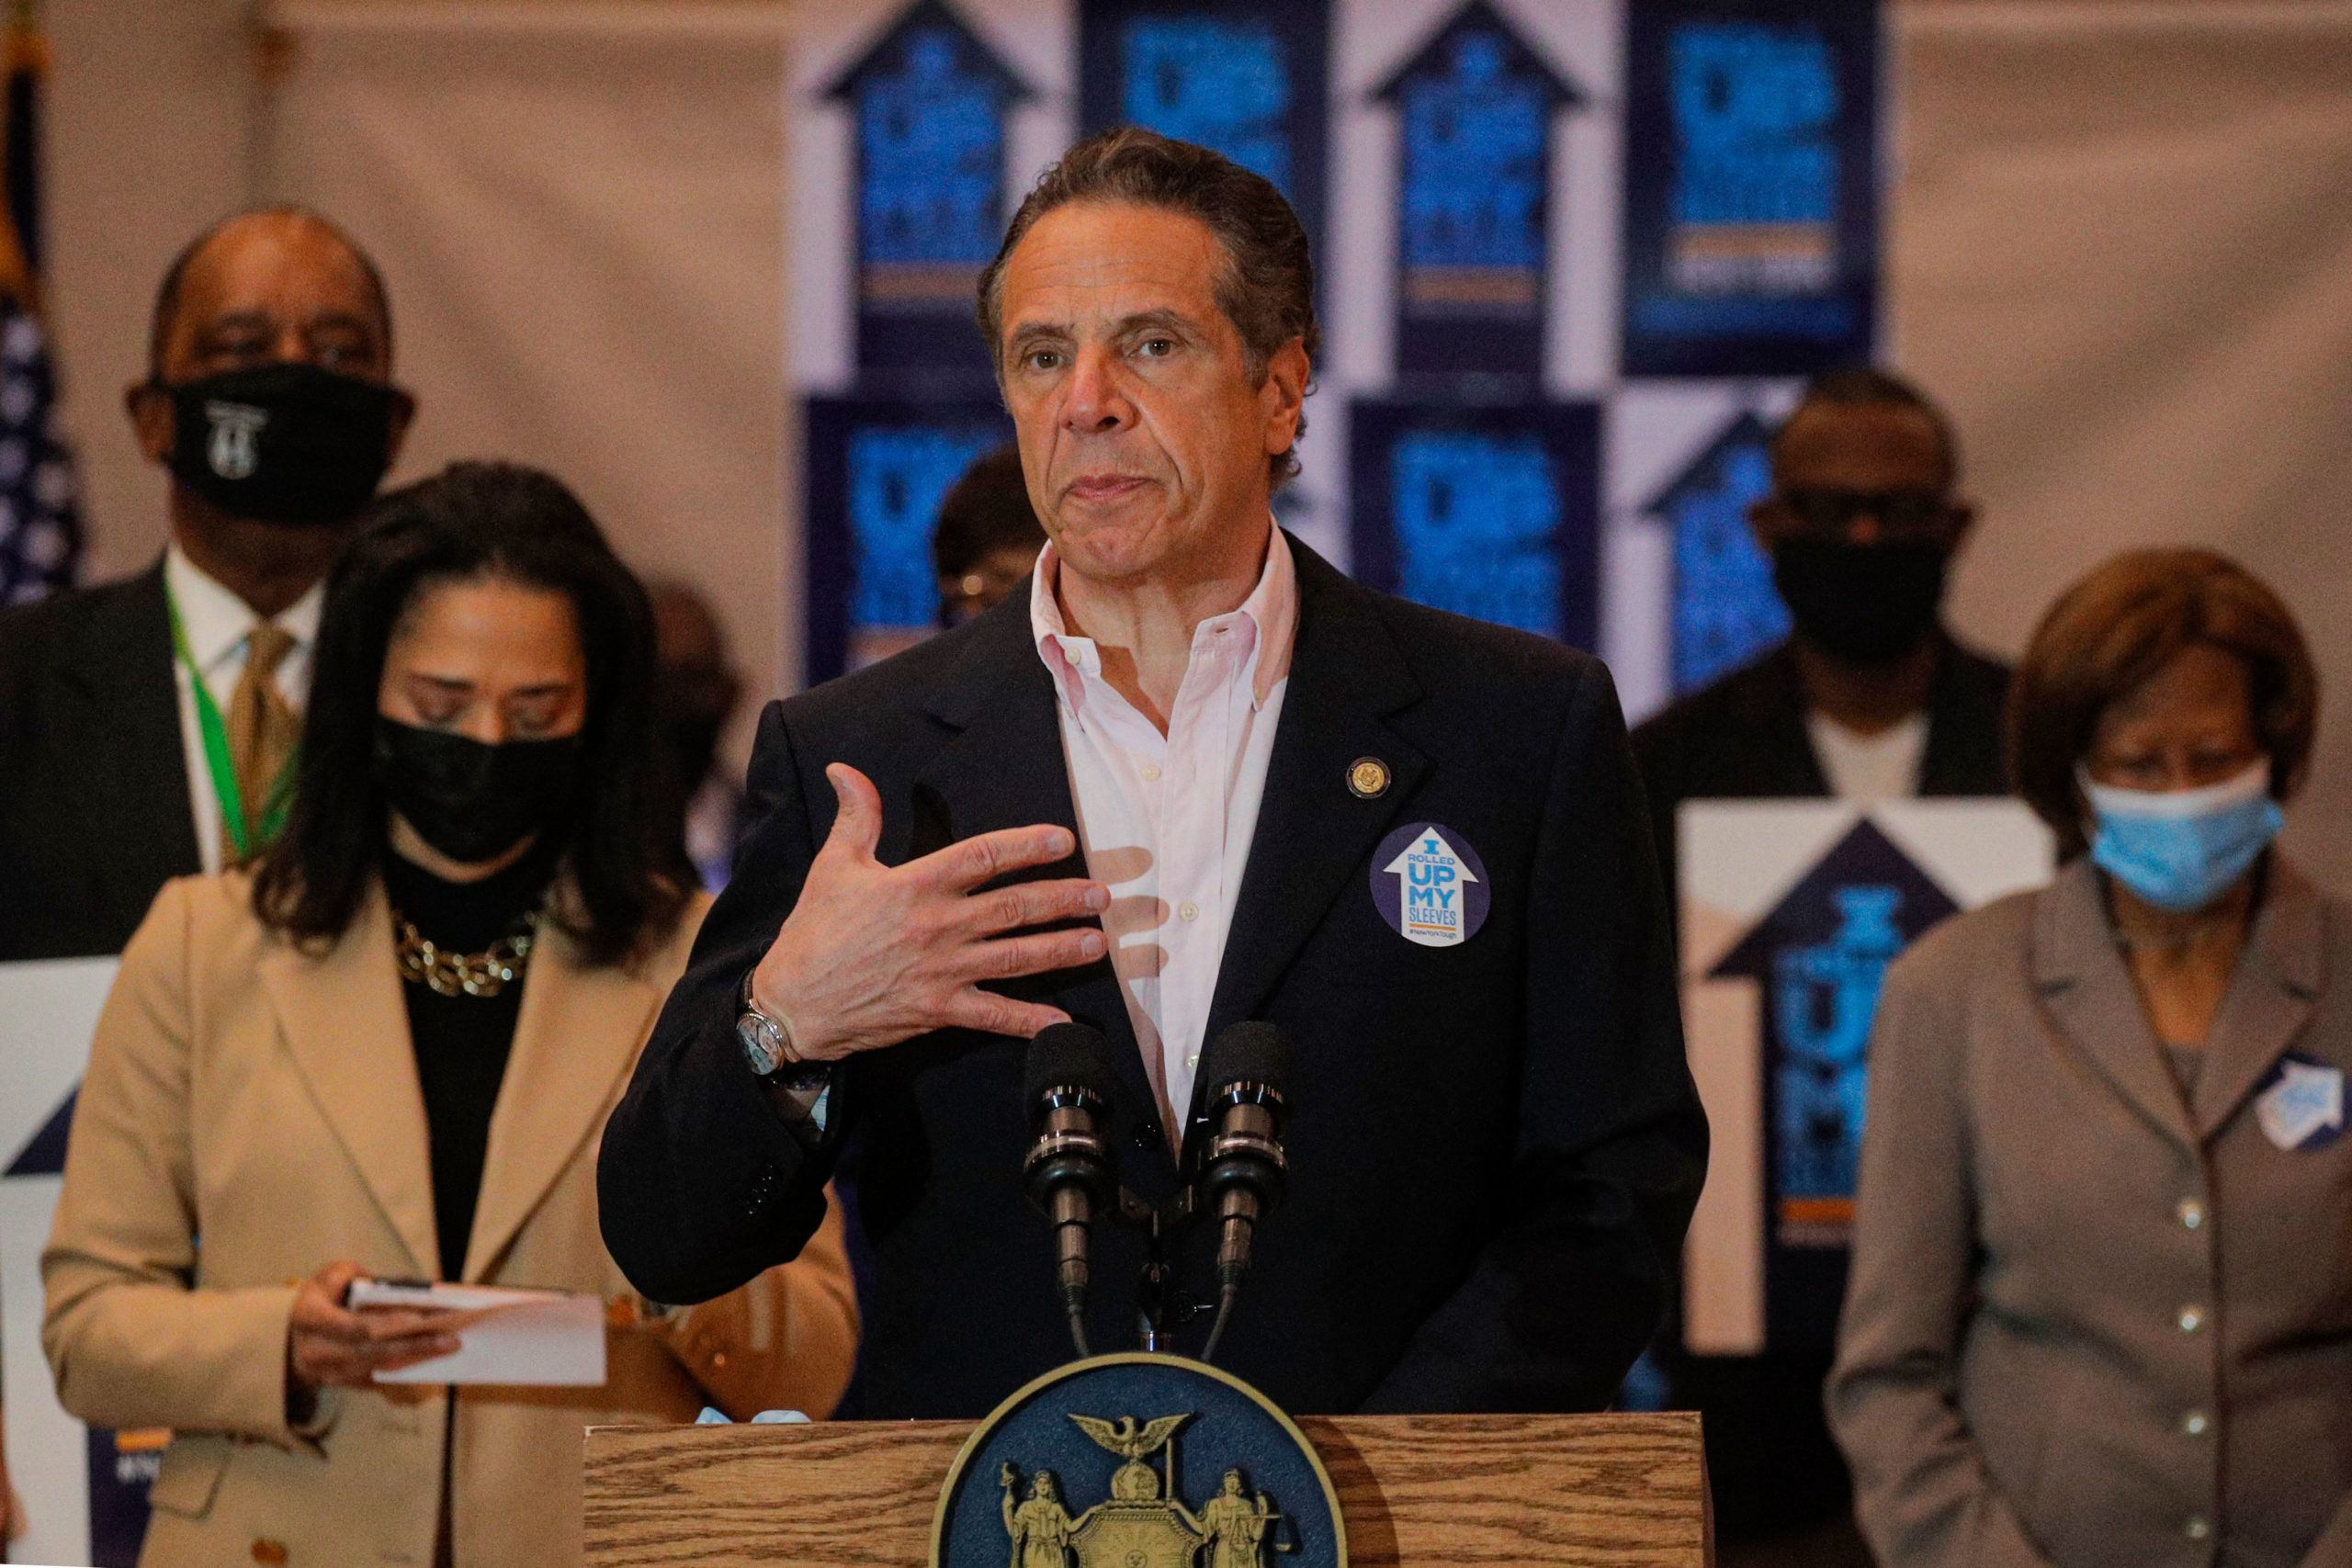 New York Governor Andrew Cuomo speaks at Rochdale Village Community Center in Queens, New York. (Photo by BRENDAN MCDERMID/AFP via Getty Images)